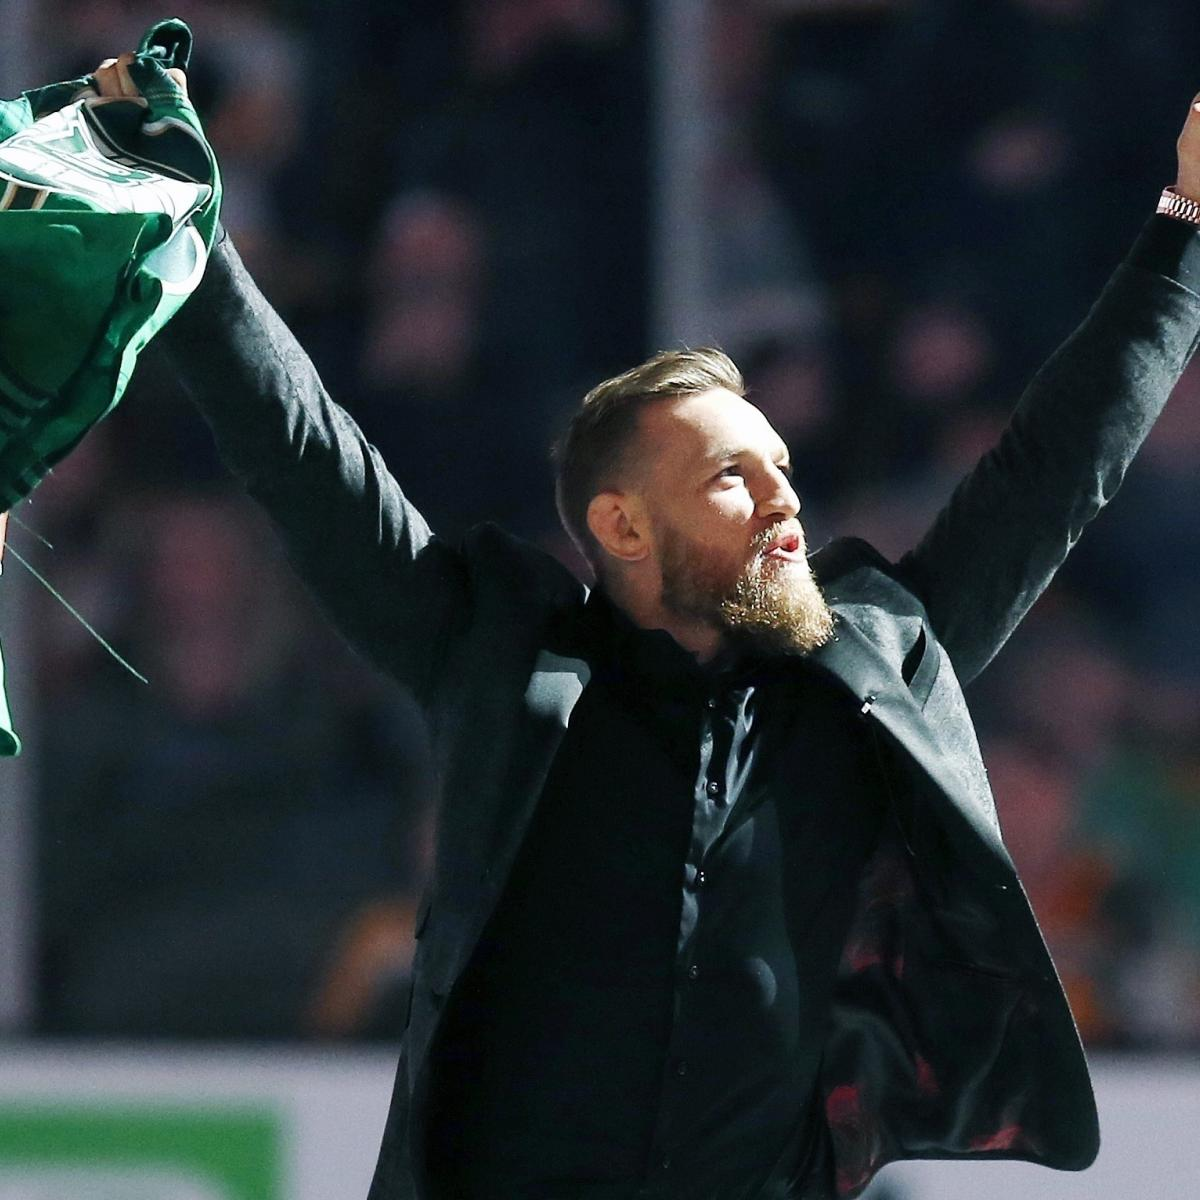 The Boston Bruins had a famous cheerleader ahead of their 2-1 overtime win over the Columbus Blue Jackets on Saturday: MMA fighter Conor McGregor ...